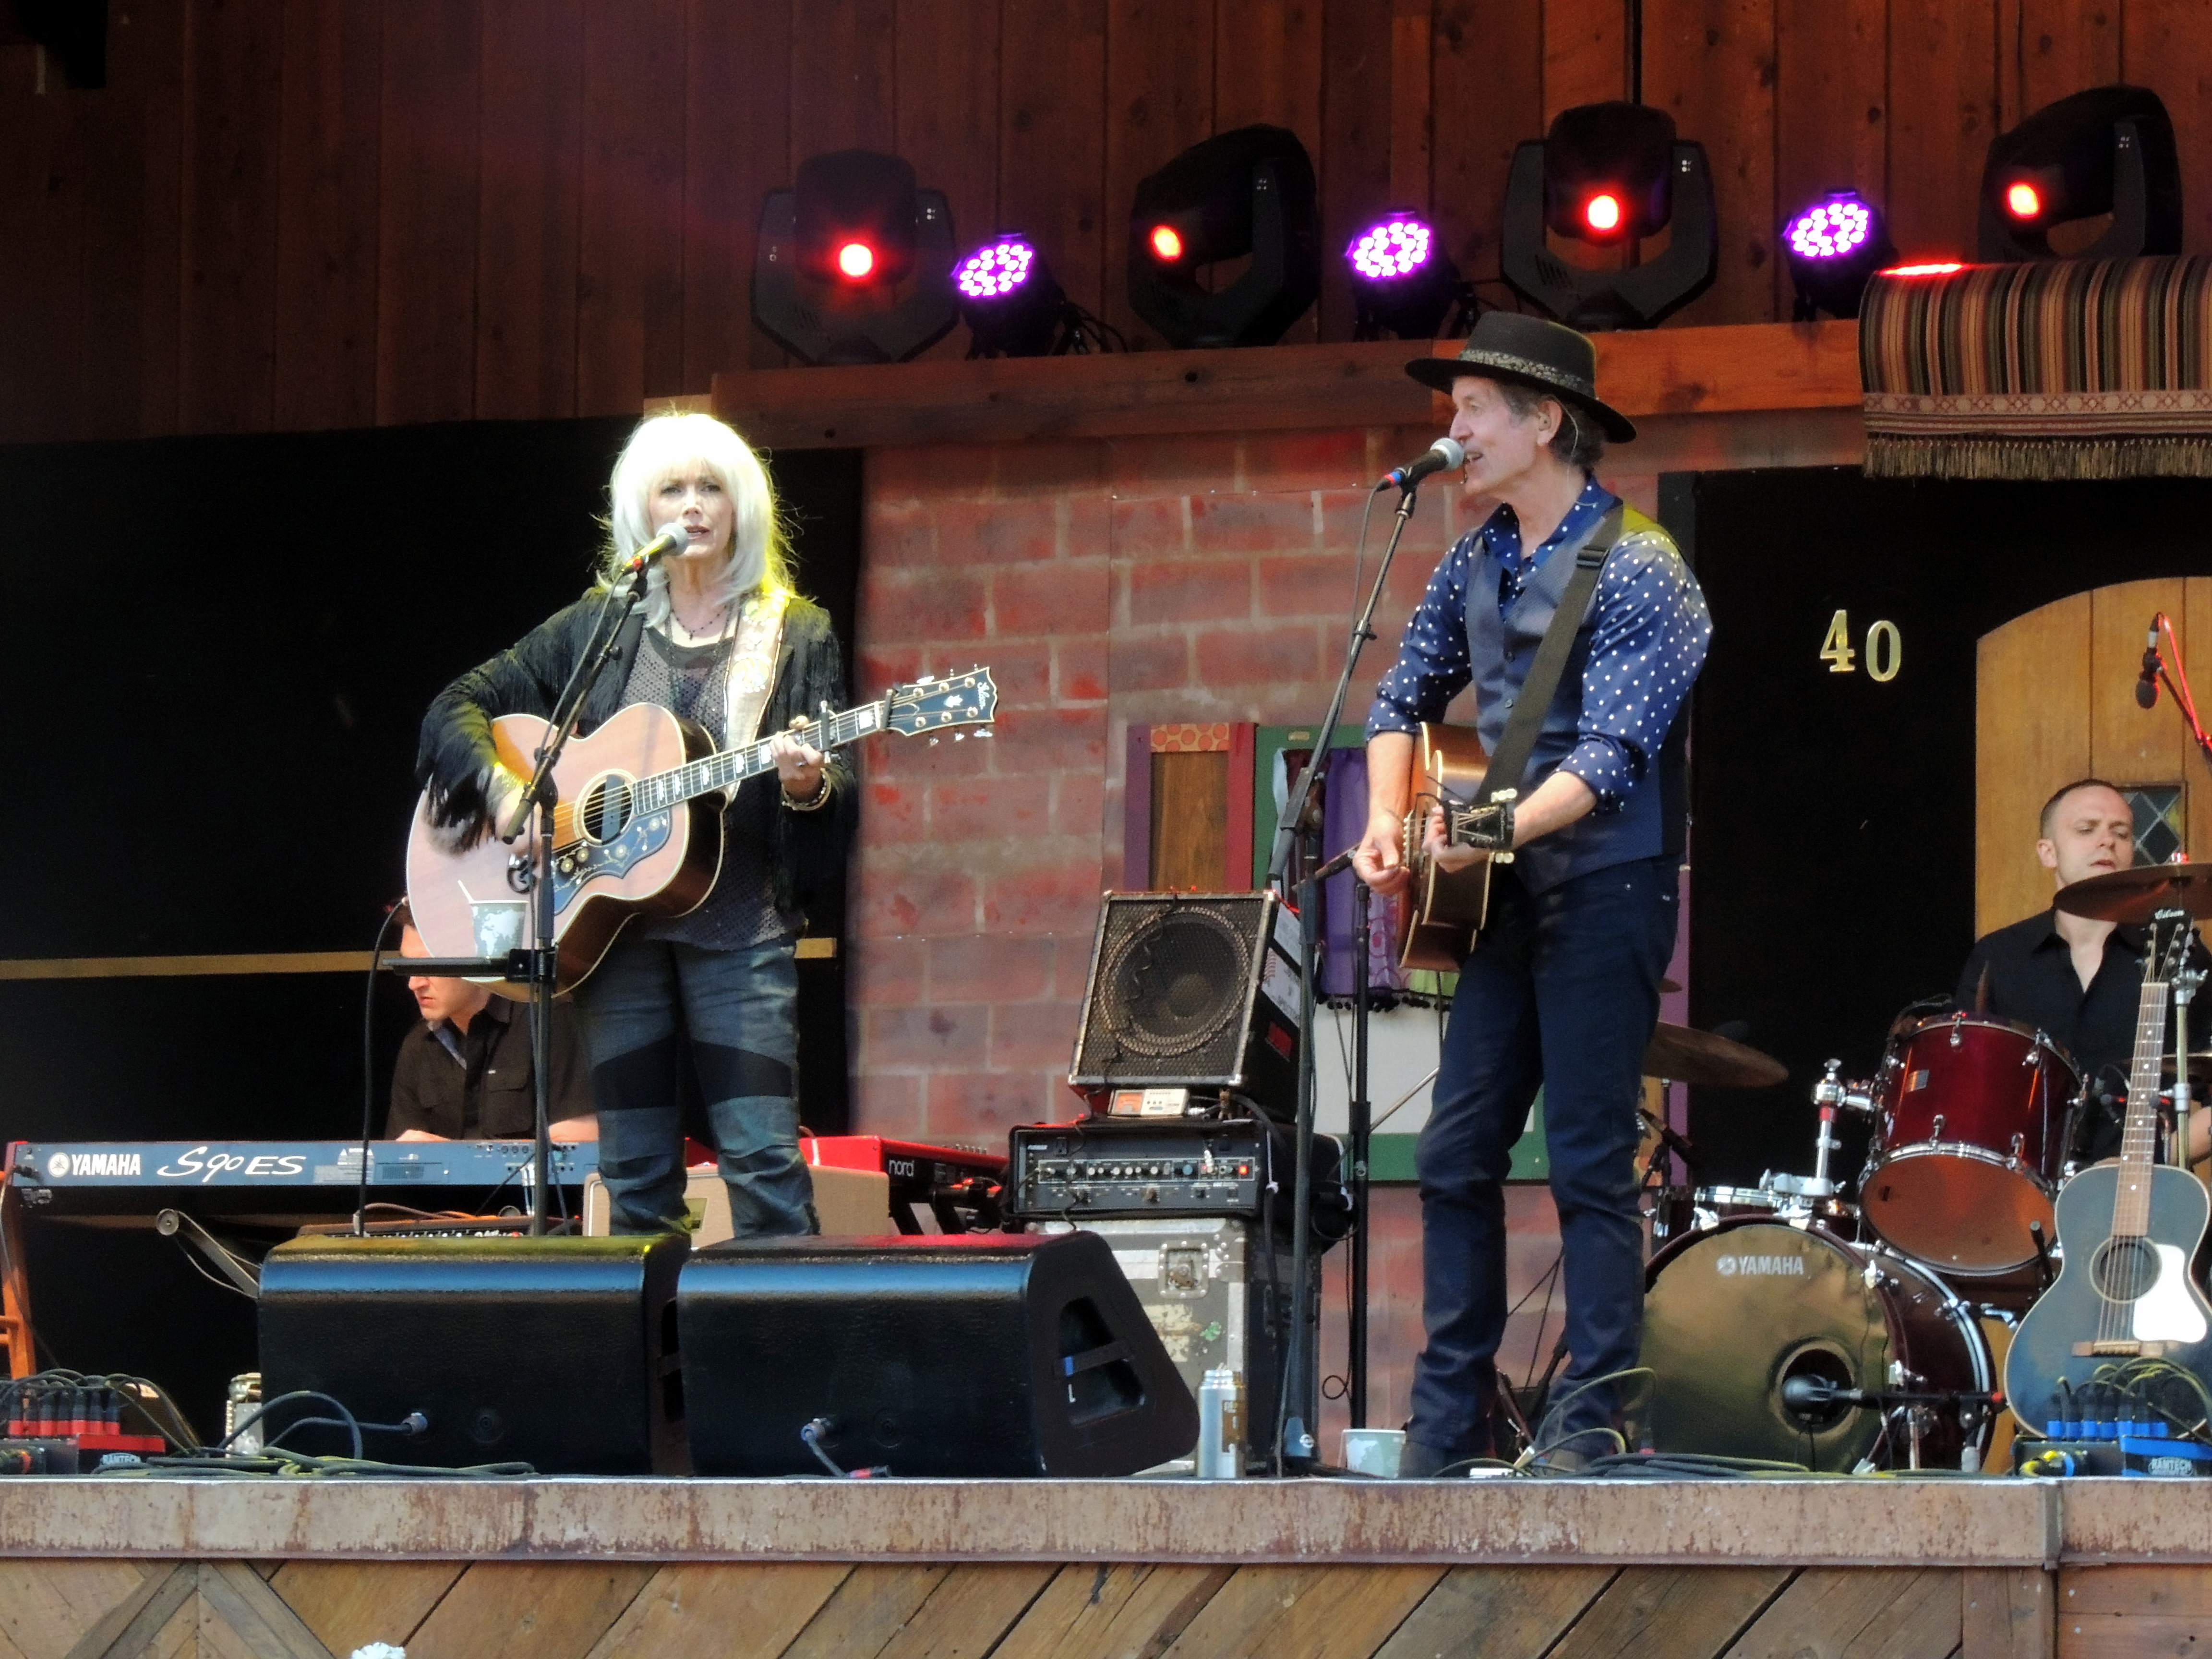 Emmylou Harrys e Rodney Crowell di Doug Anderson / CC BY (https://creativecommons.org/licenses/by/2.0)